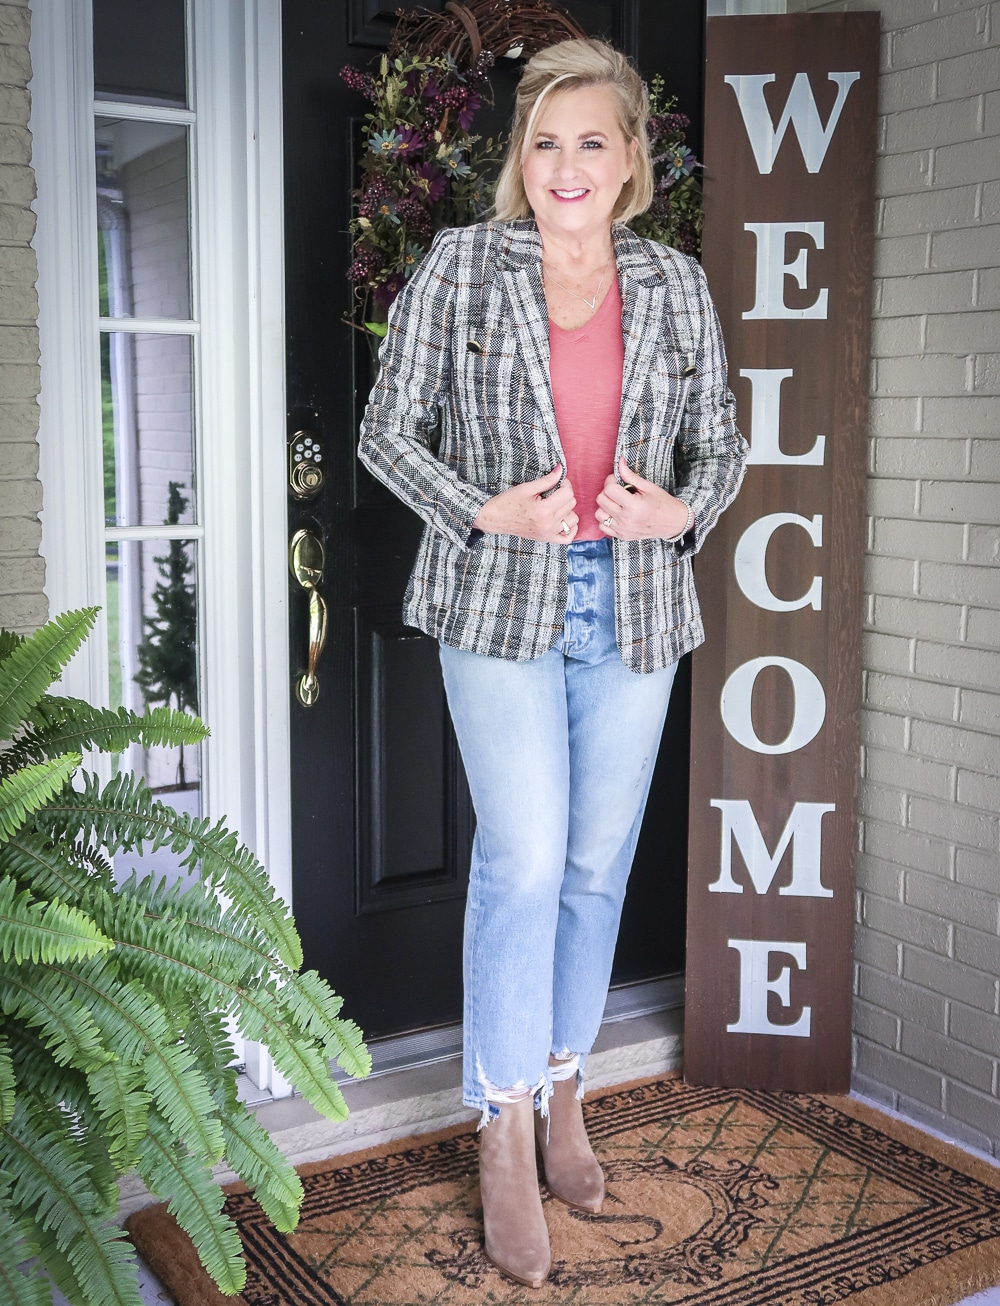 Fashion Blogger 50 Is Not Old is wearing a tweed blazer and distressed jeans